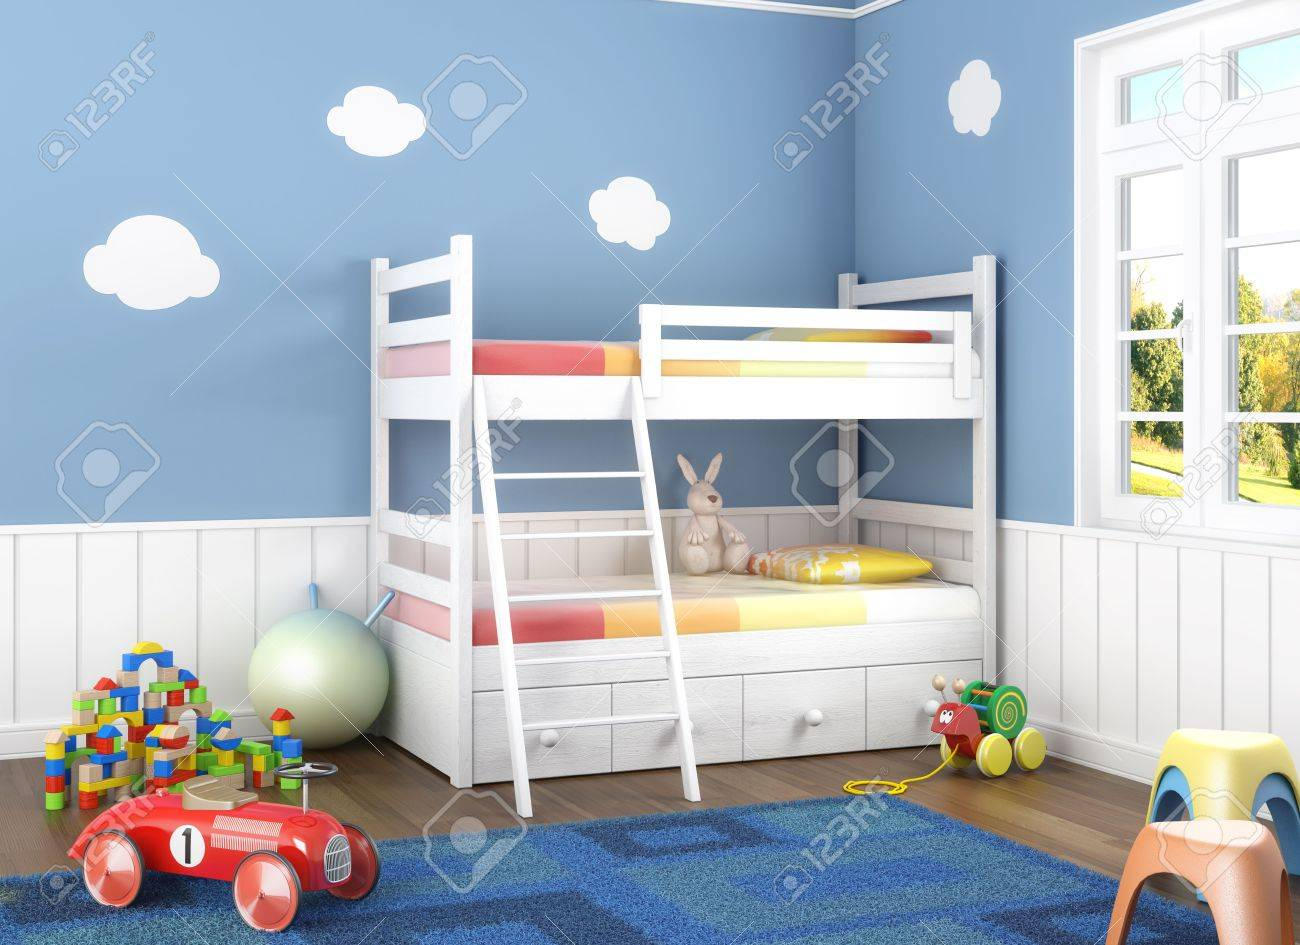 Children´s  room in blue walls with litter and lots of toys on the floor Stock Photo - 8163611